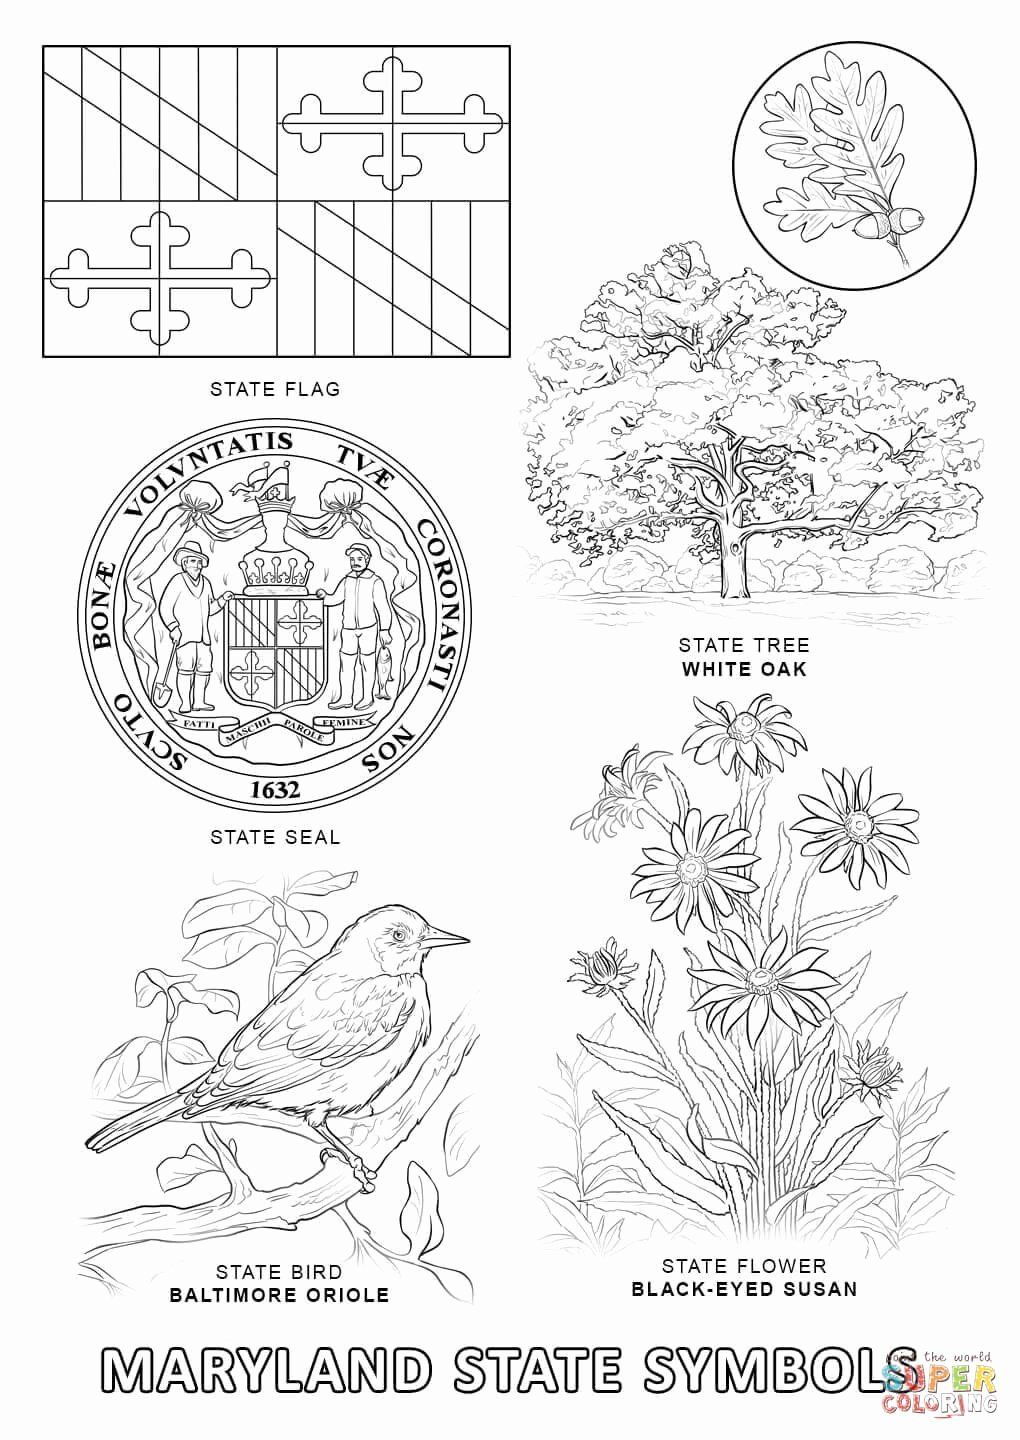 Norway Flag Coloring Pages Best Of Georgia State Flower Coloring Page Flowers Healthy